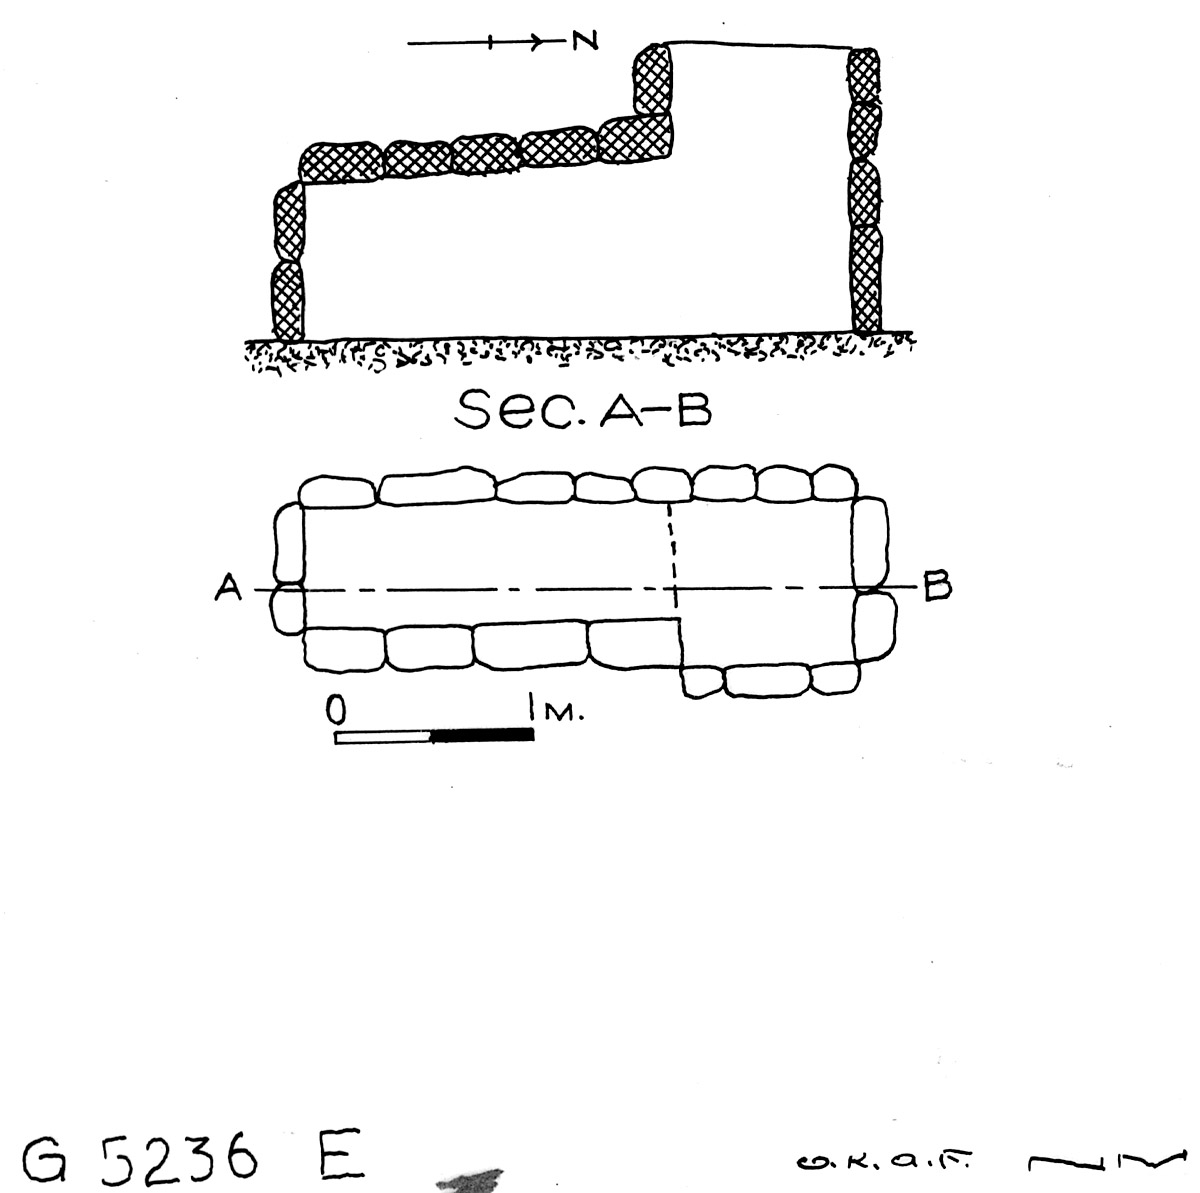 Maps and plans: G 5236, Shaft E